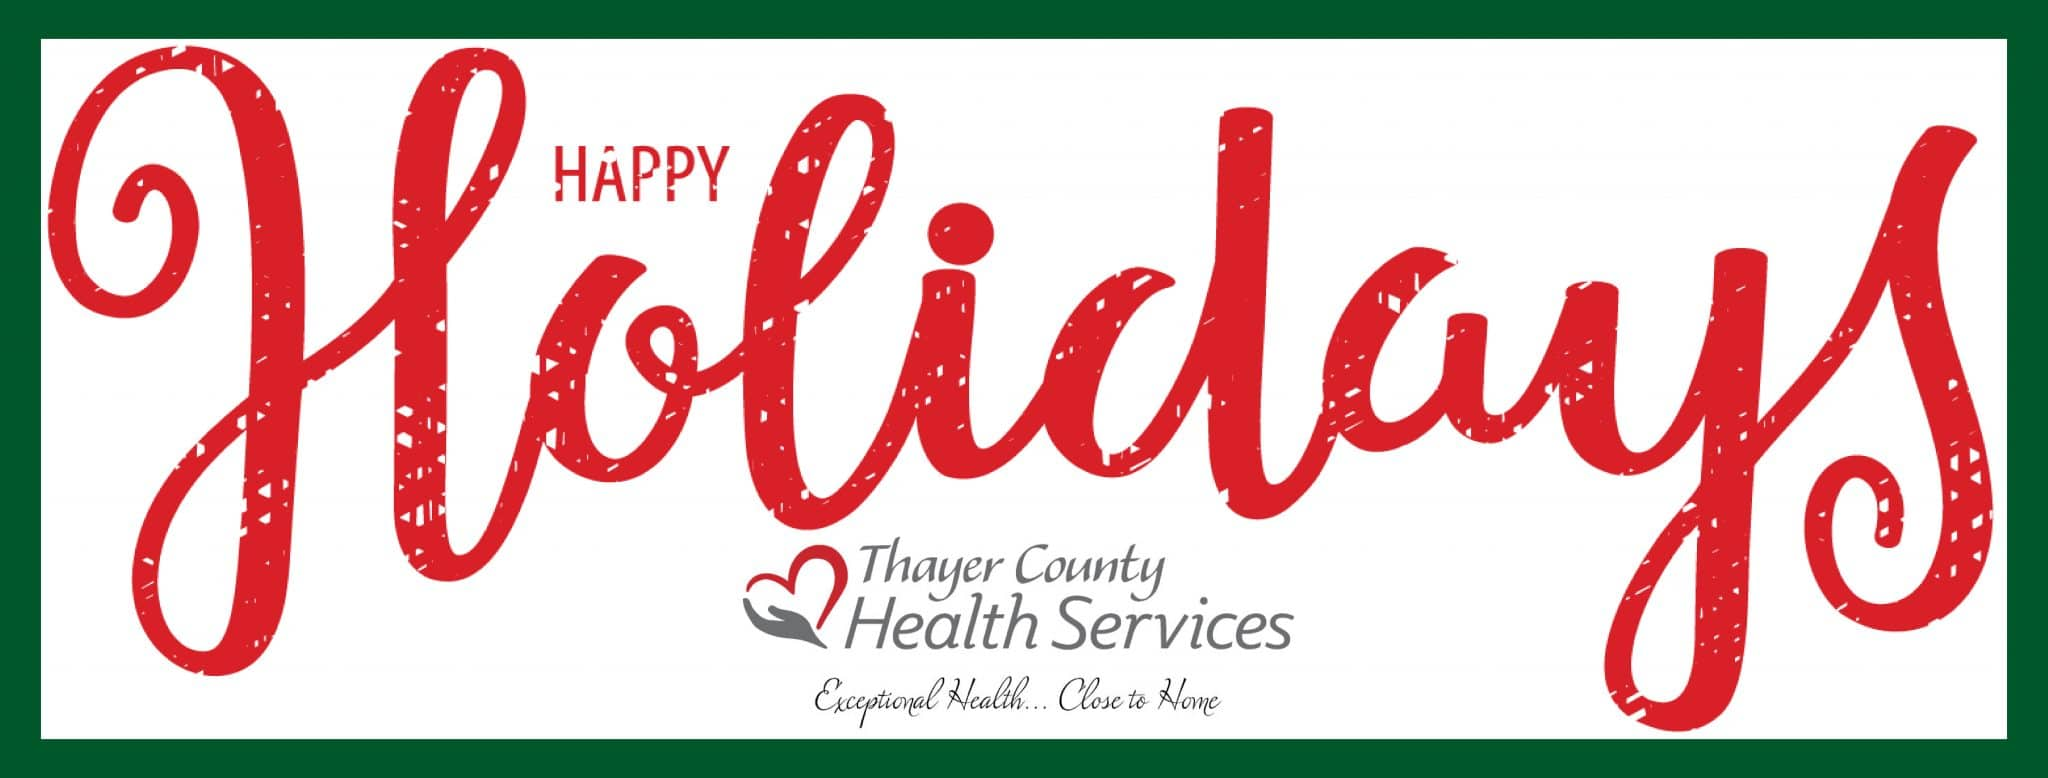 Happy Holidays from TCHS